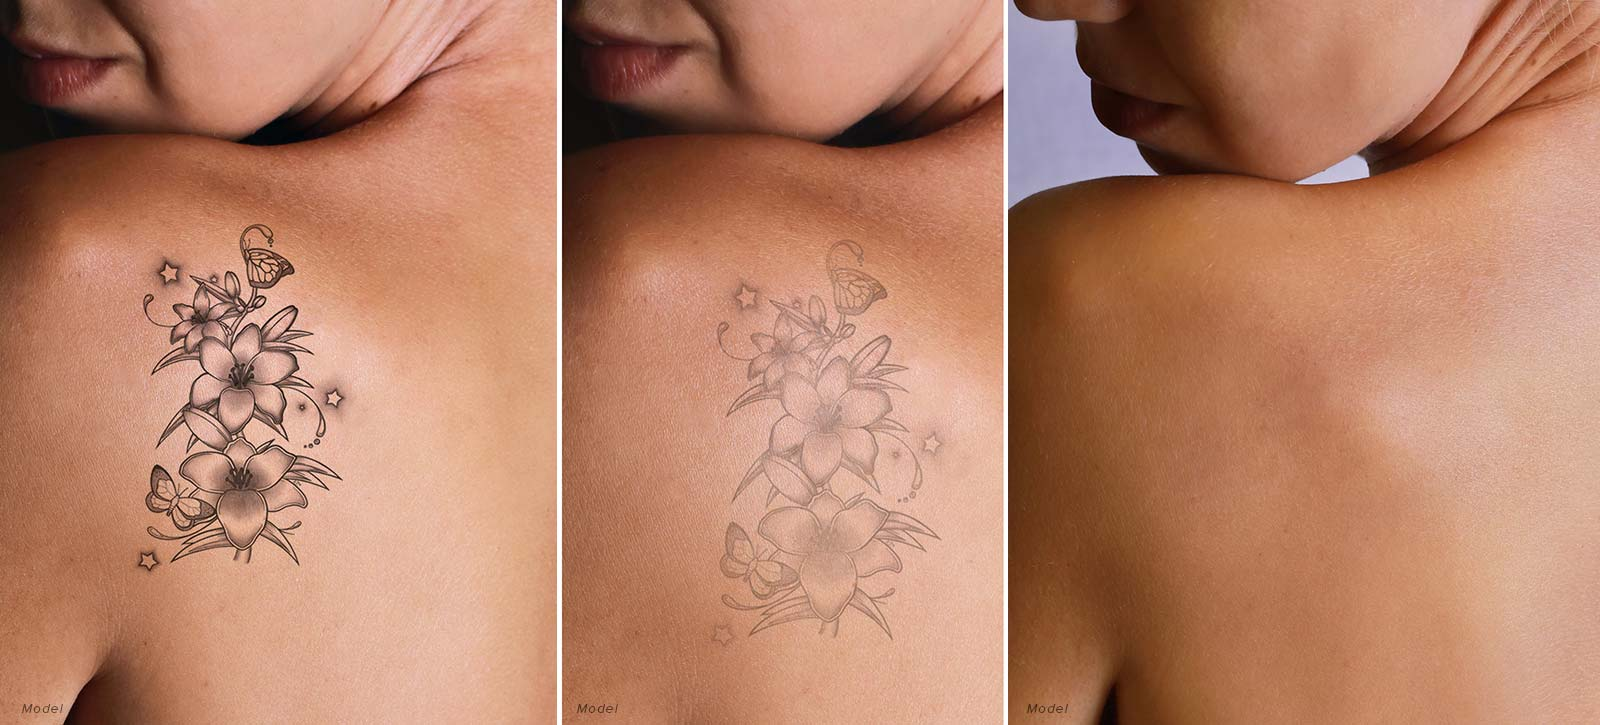 Before and after of Tattoo removal